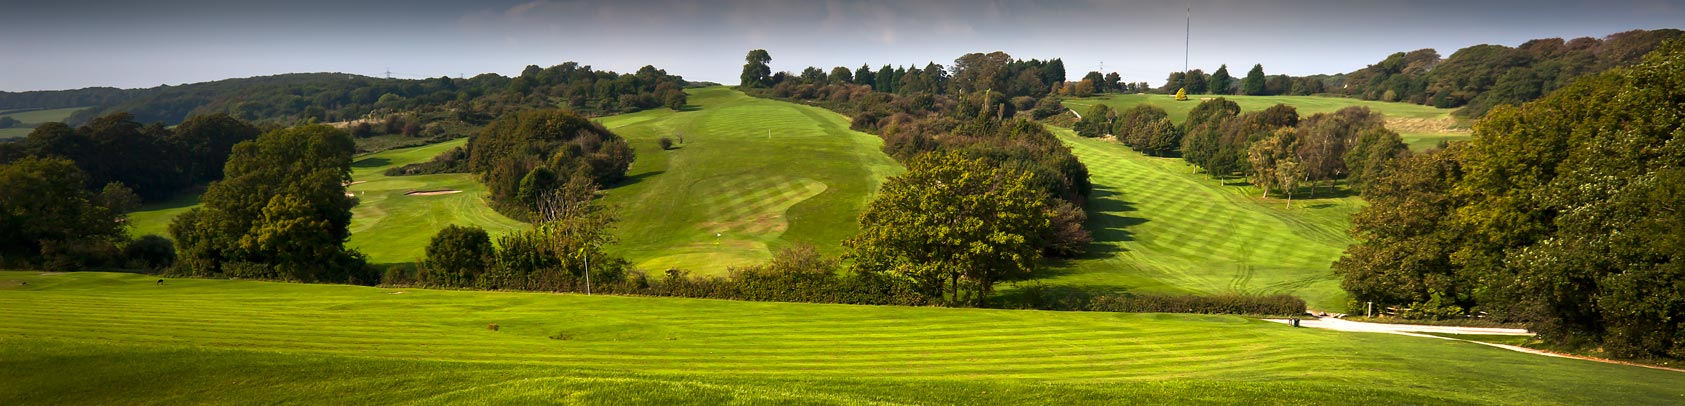 Best Golf Course in South Wales near Cardiff